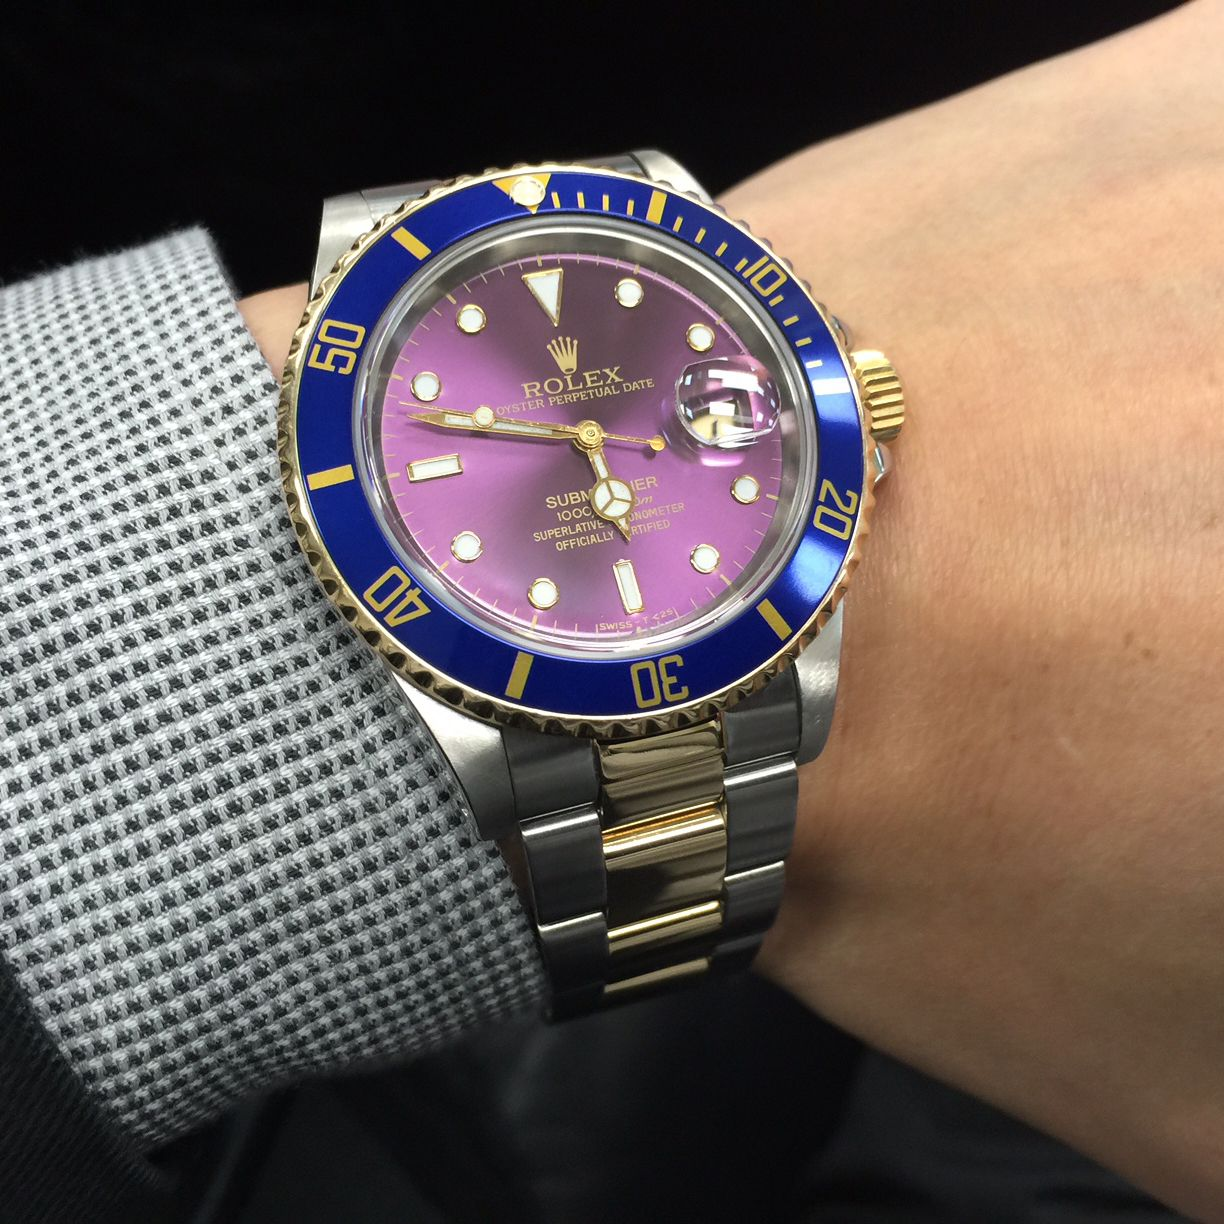 Sneak Peak At Rolex Submariner Two Tone Reference 16803